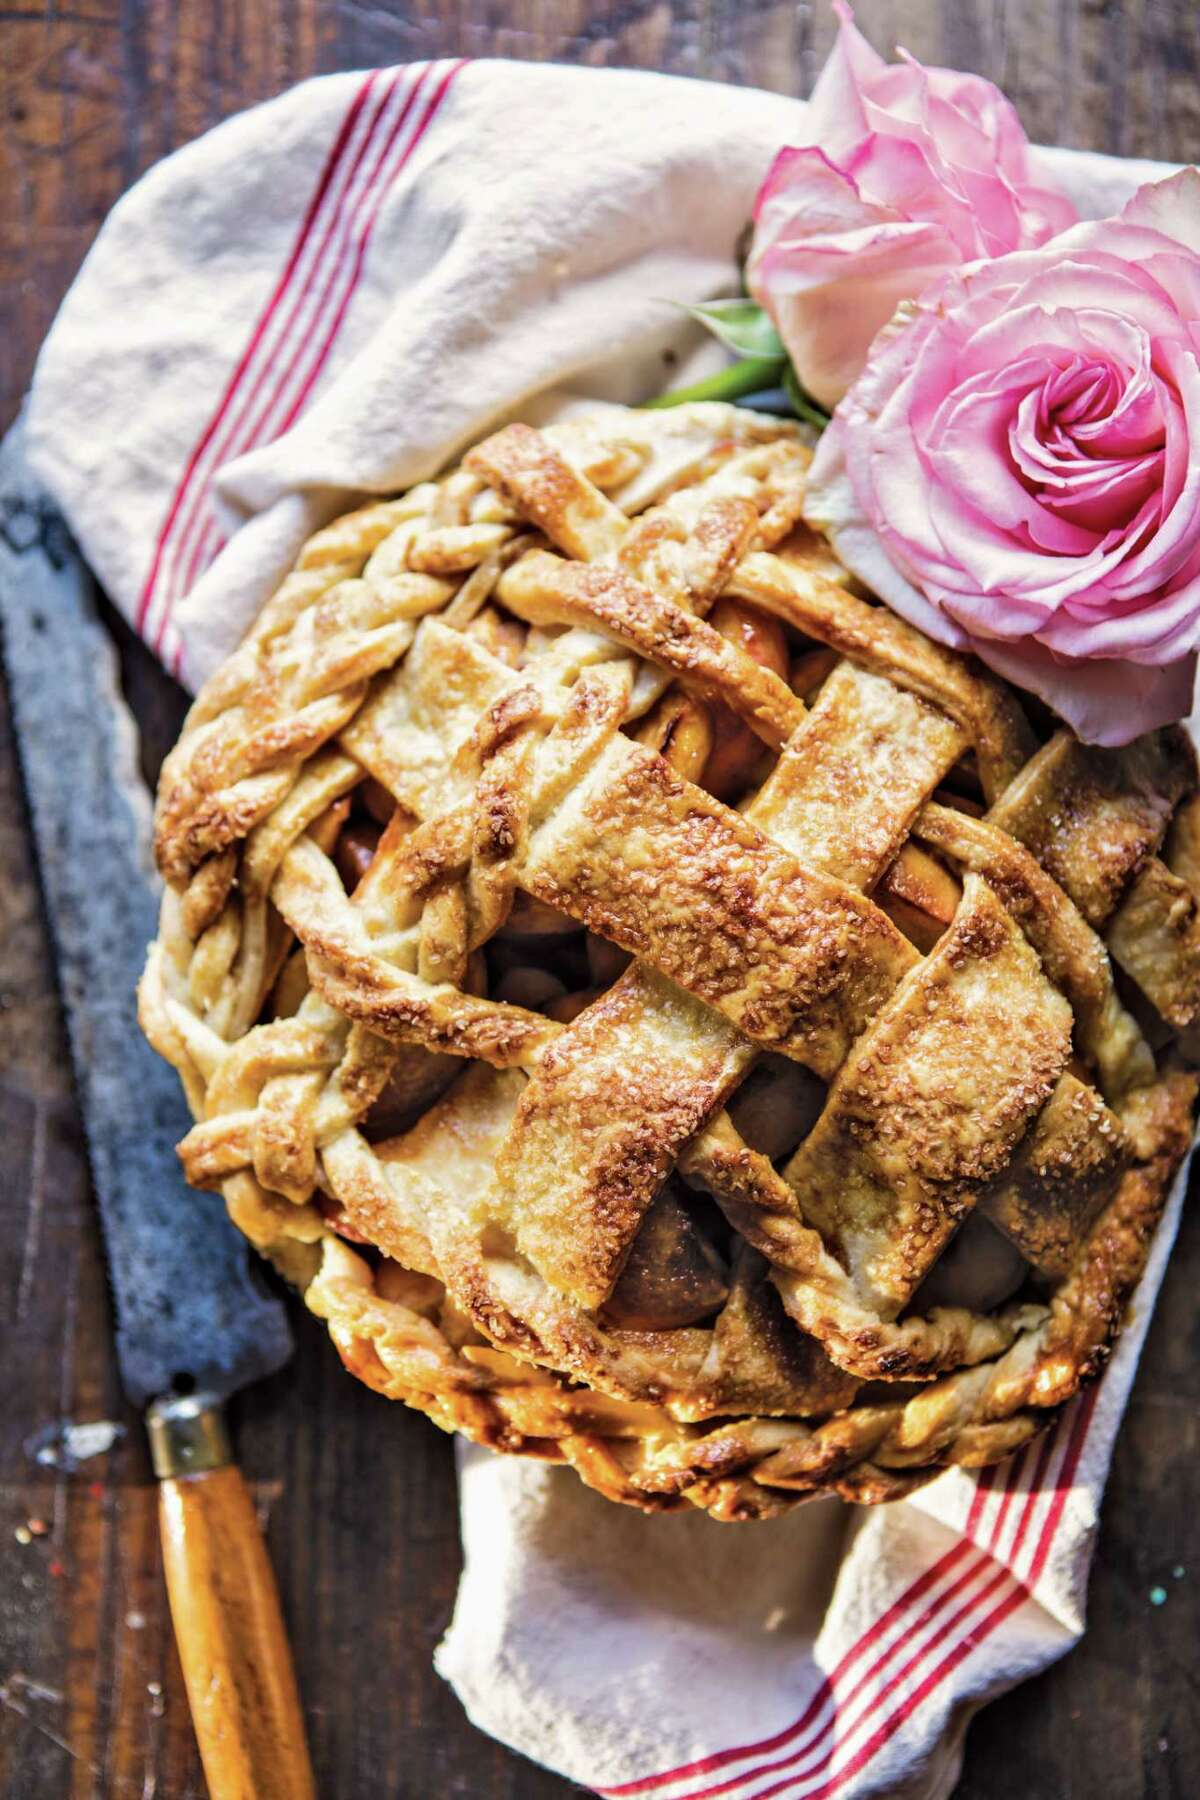 Salted Treacle Butter Apple Pie A beautiful classic that is the epitome of fall. Read the recipe.